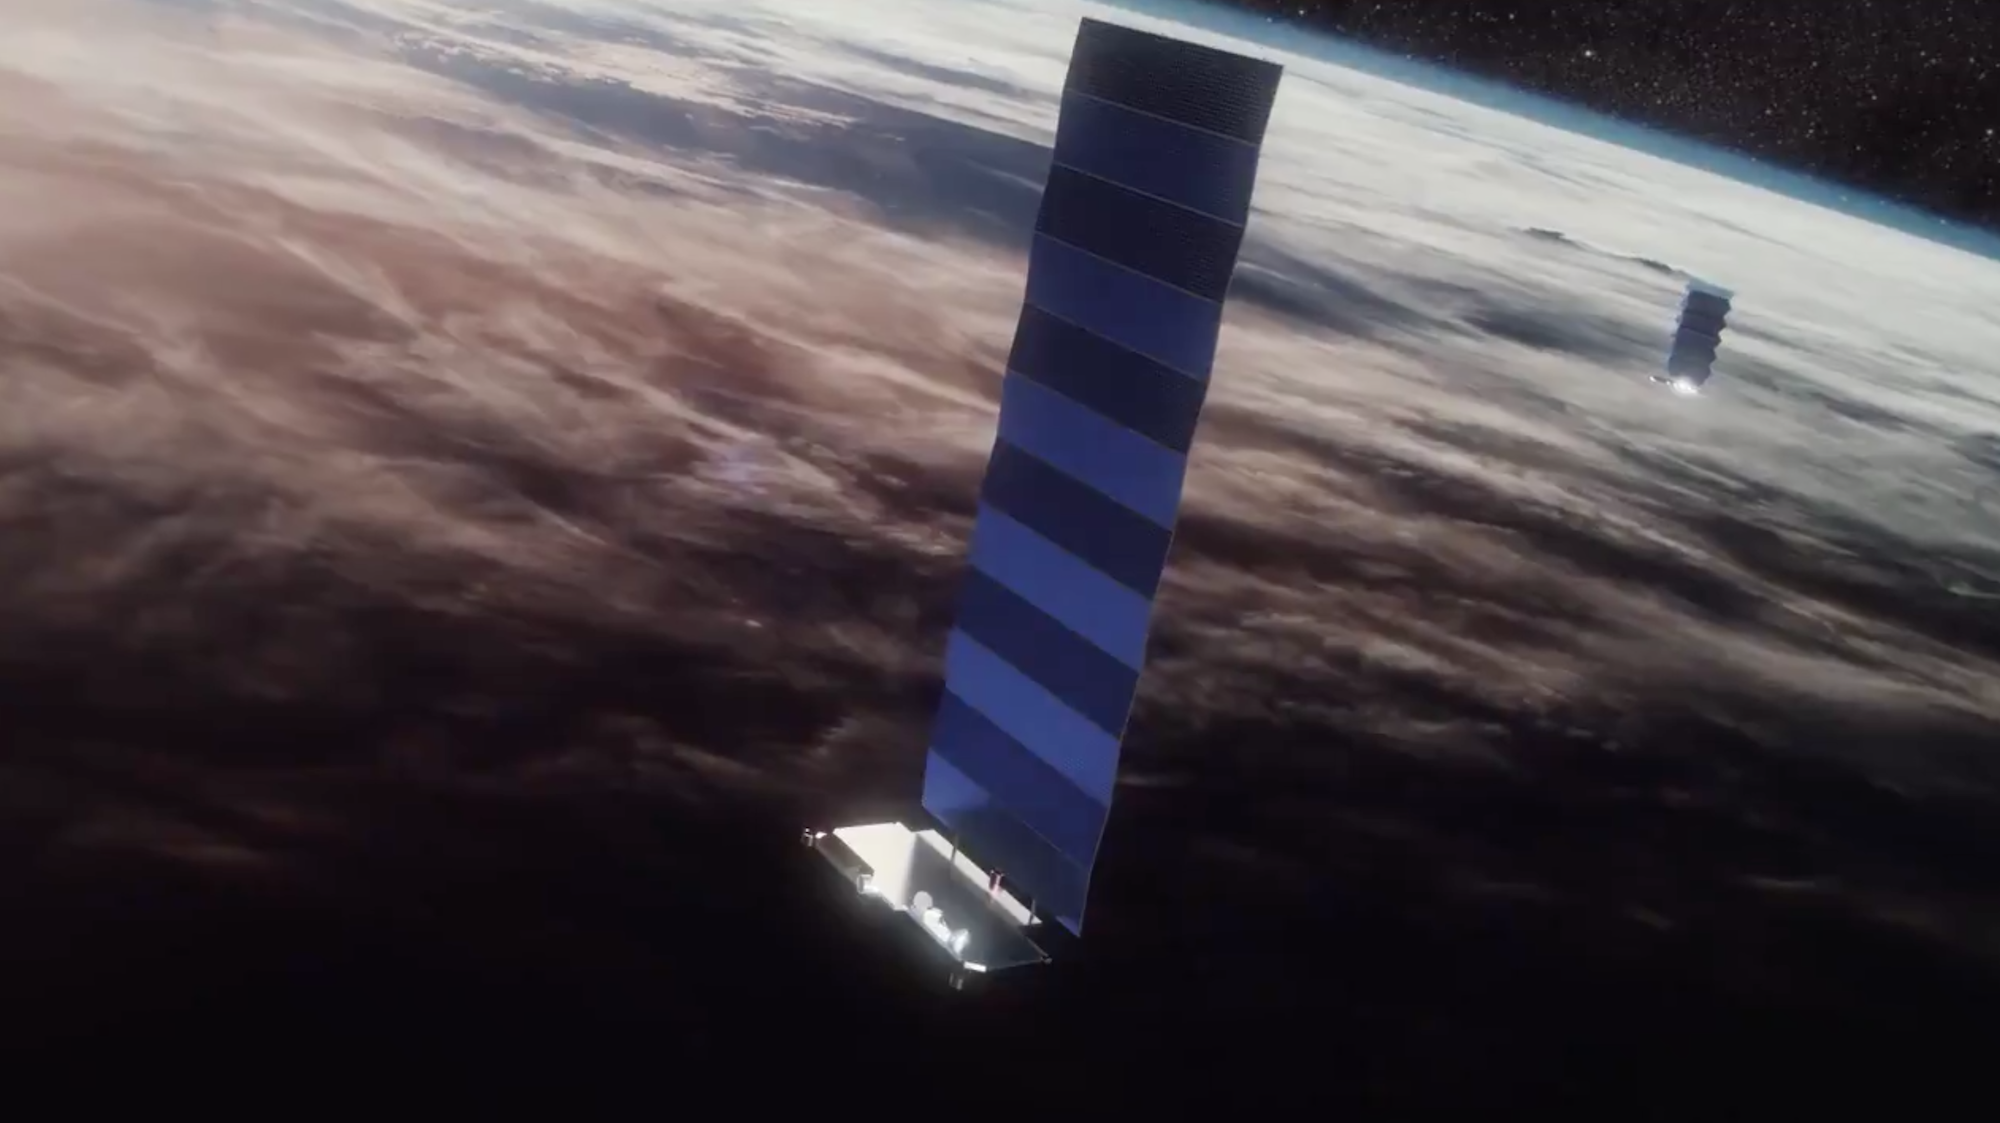 SpaceX is adding laser cross links to the Starlink polar satellites